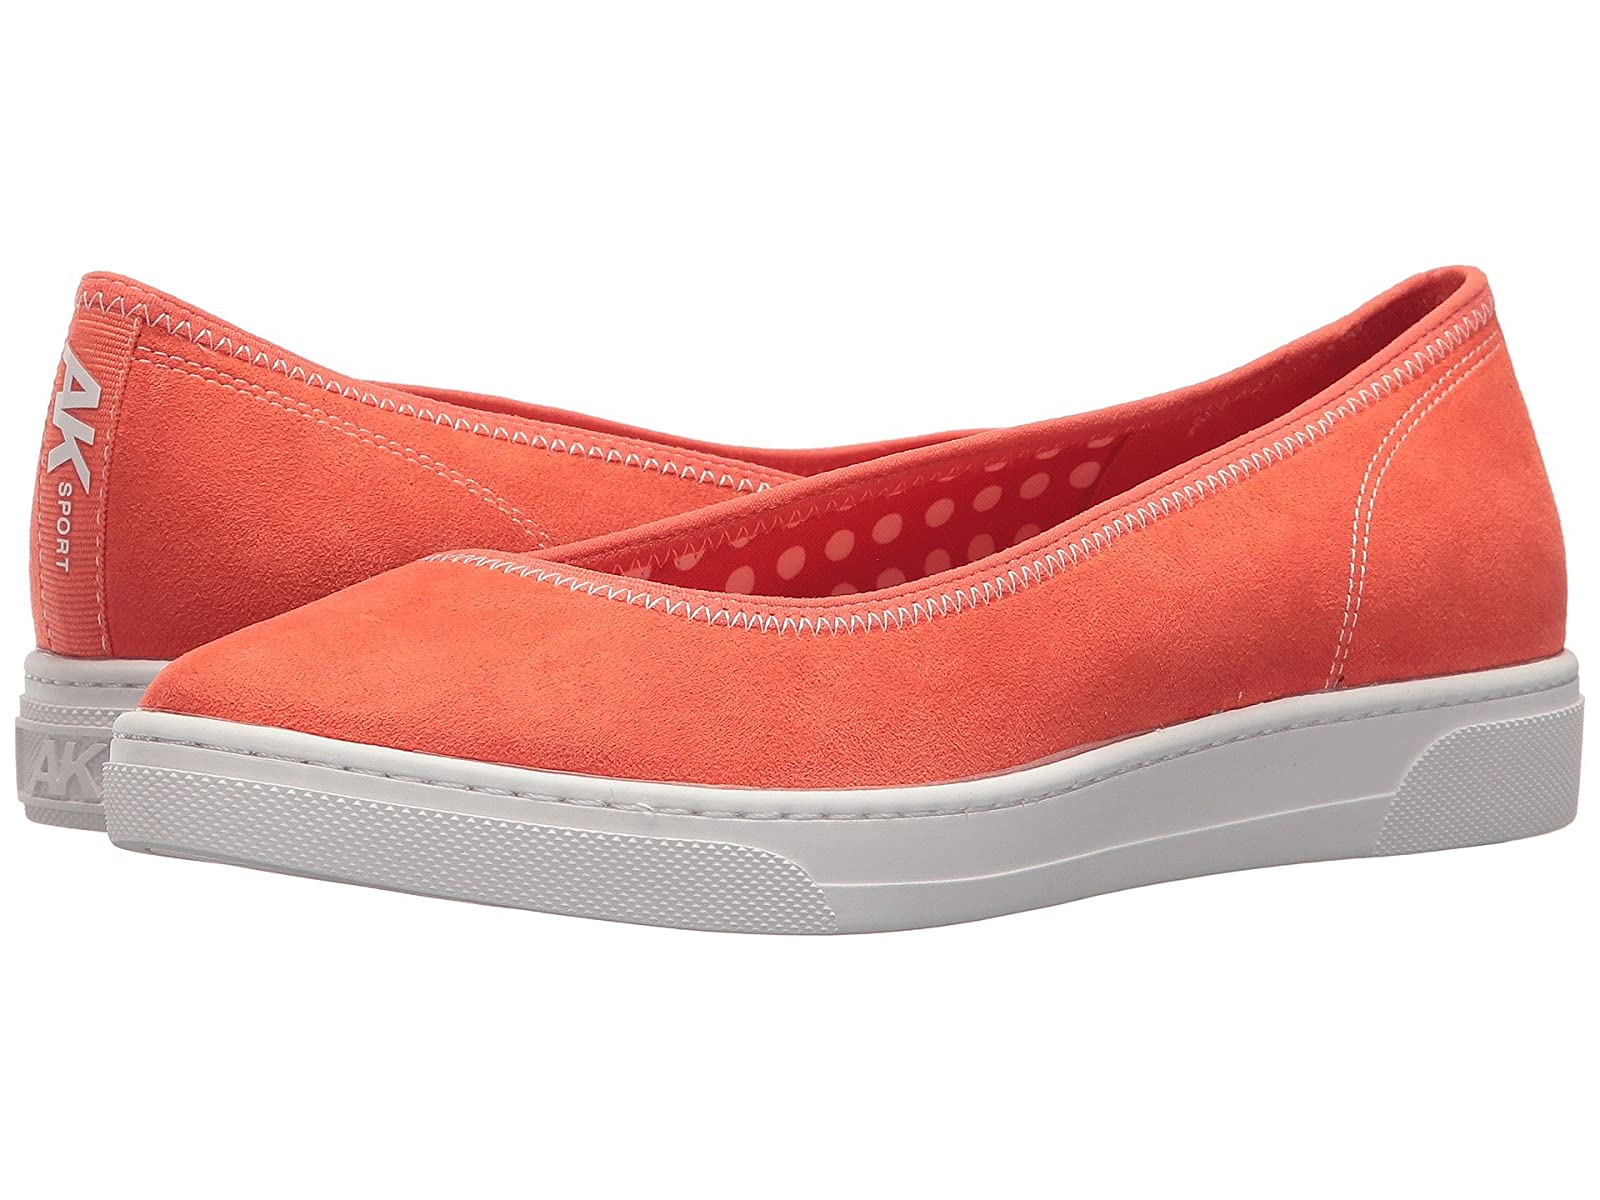 Anne Klein OverthetopAtmospheric grades have affordable shoes